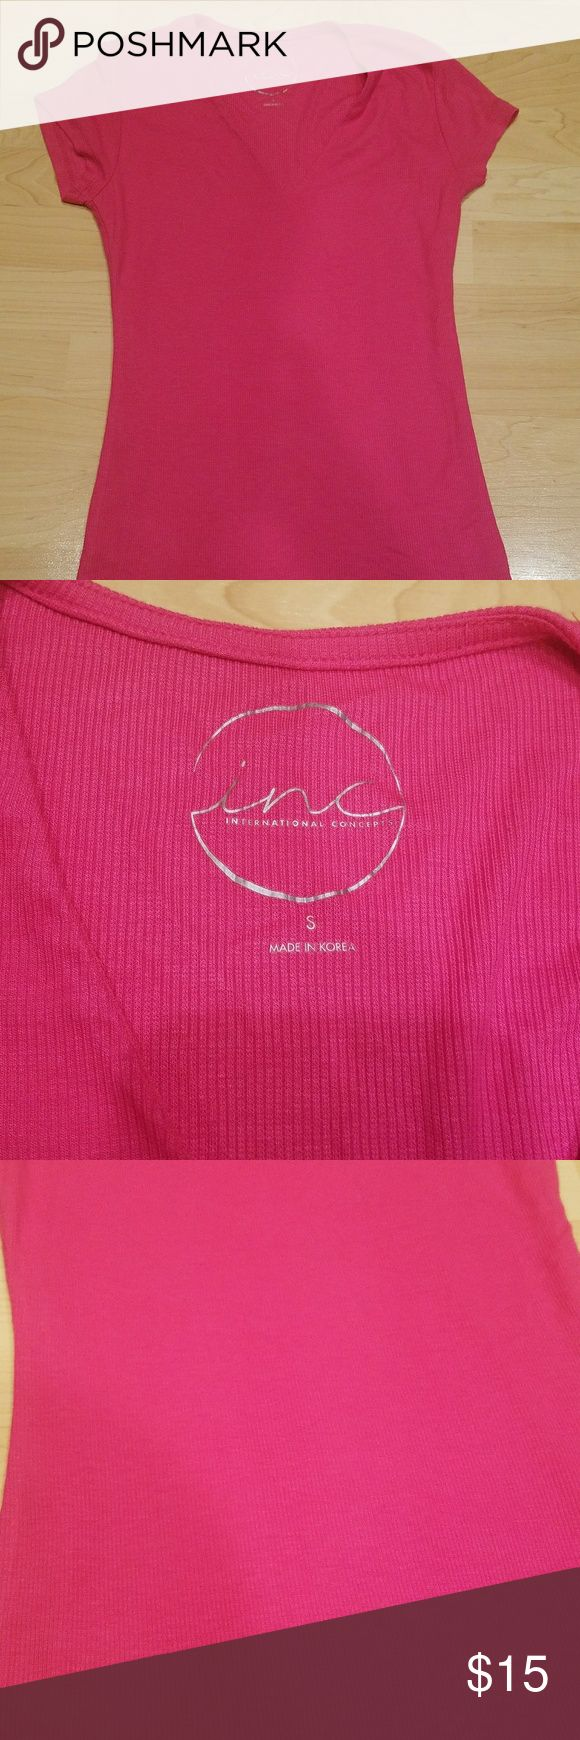 INC pink short sleeve top size small Basic pink thirt INC International Concepts Tops Tees - Short Sleeve